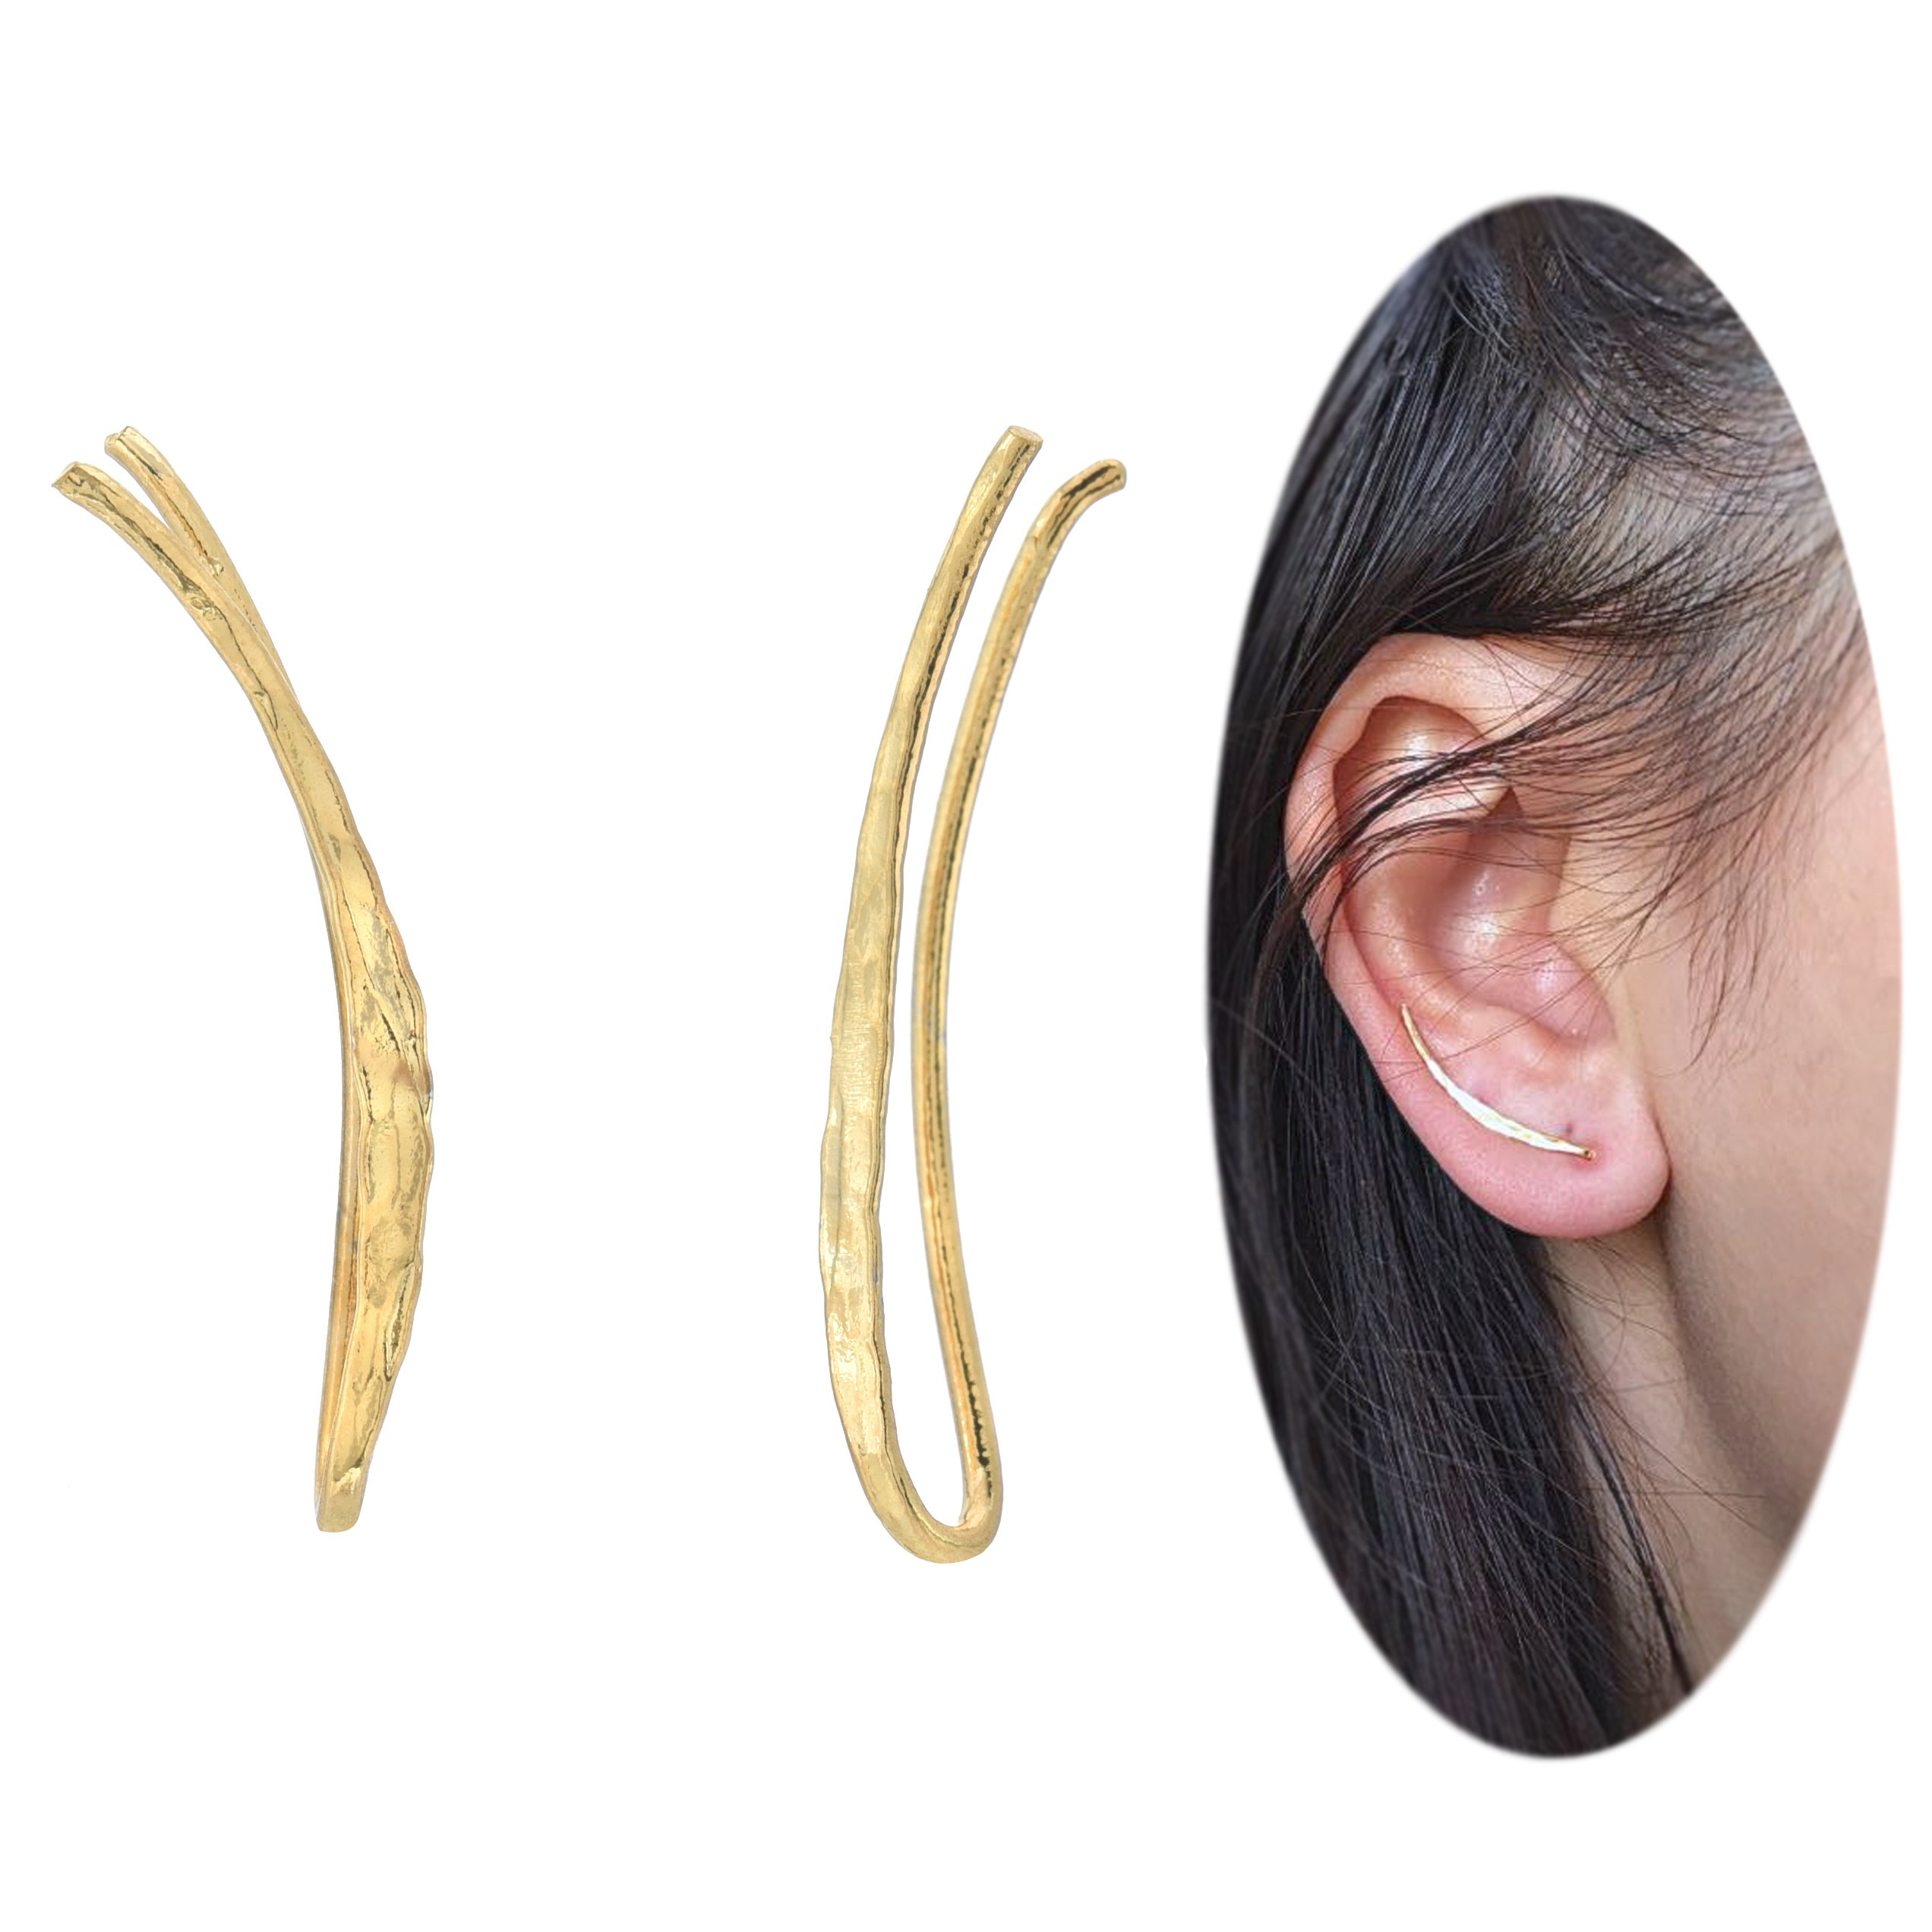 Ear Climber Crawler Cuff Earrings - 925 Sterling Silver with Yellow Gold Plating